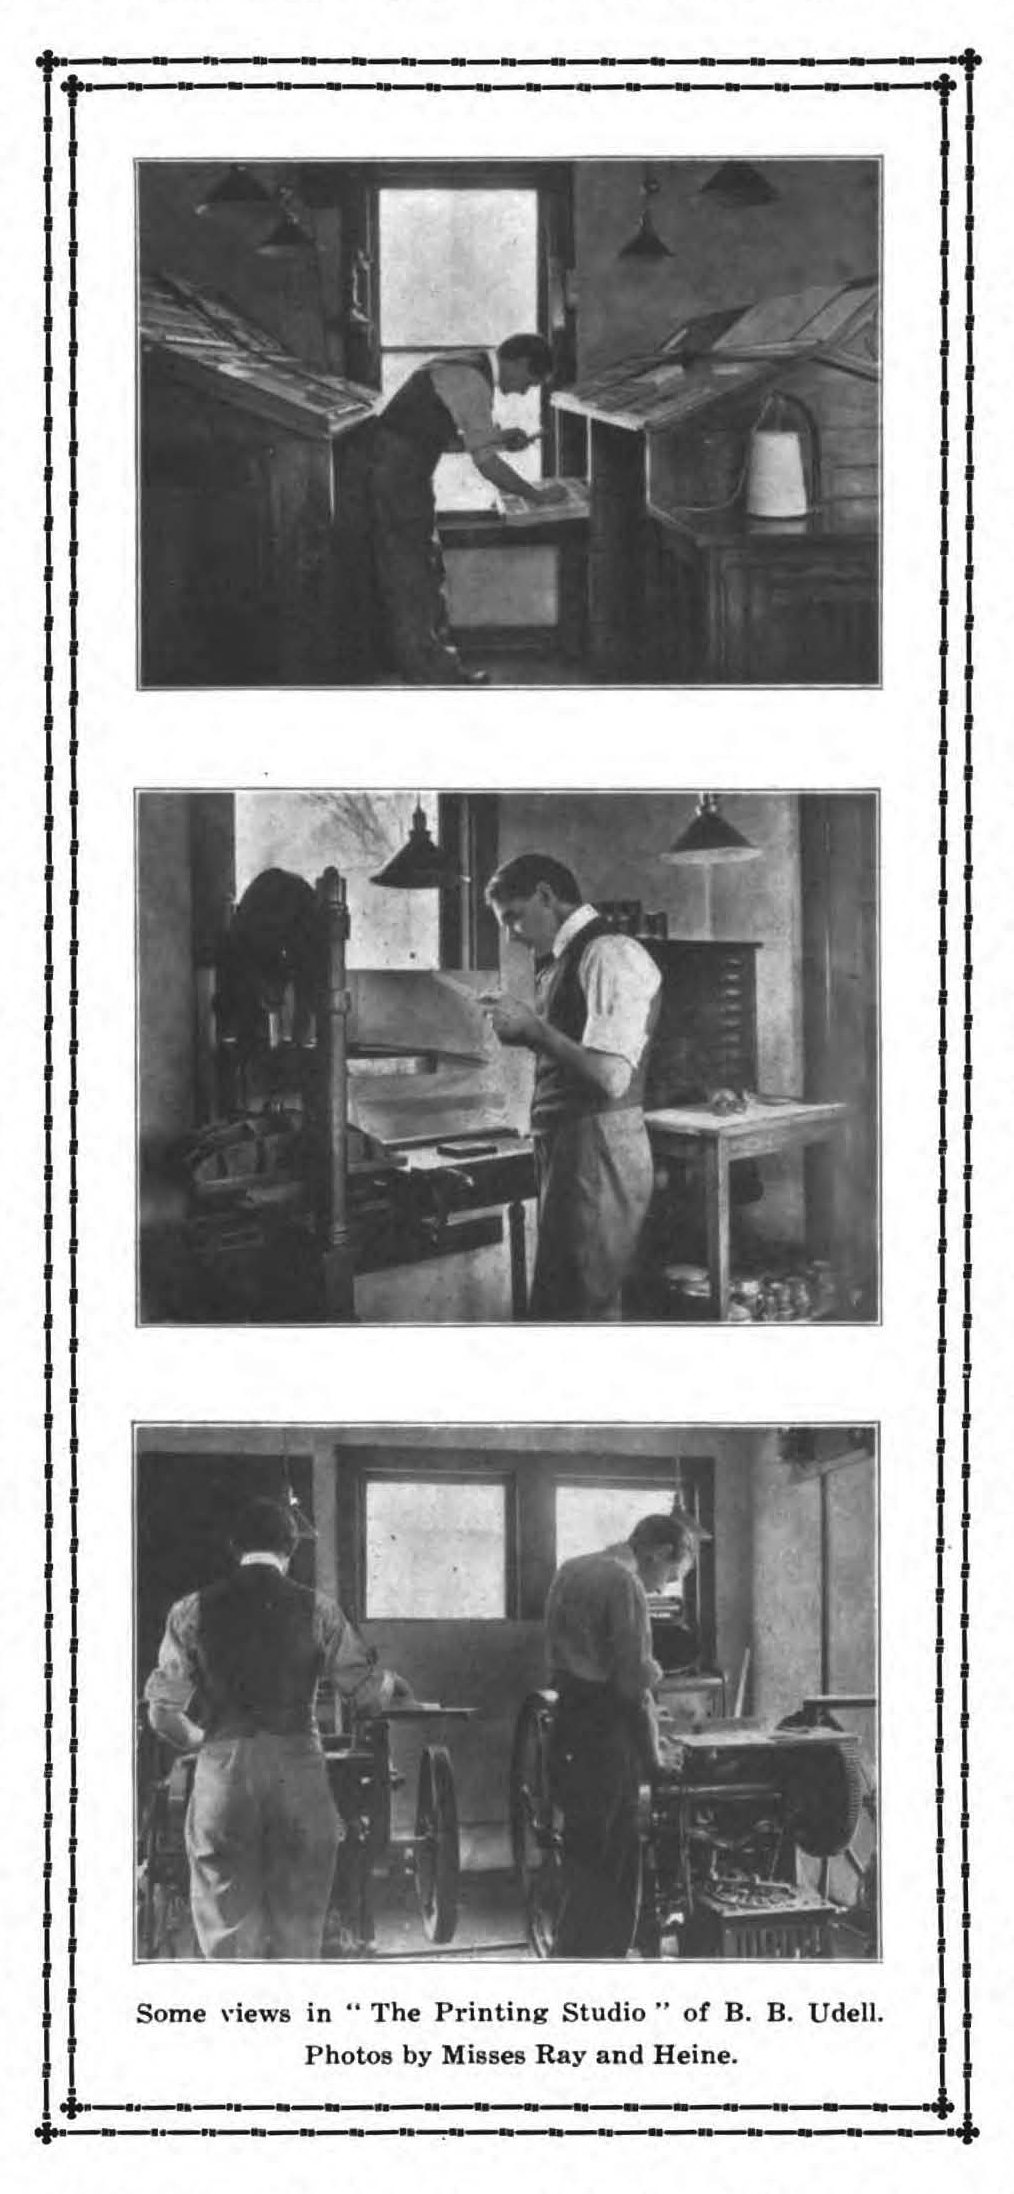 The Printing Studio of B.B. Udell. Photographs by